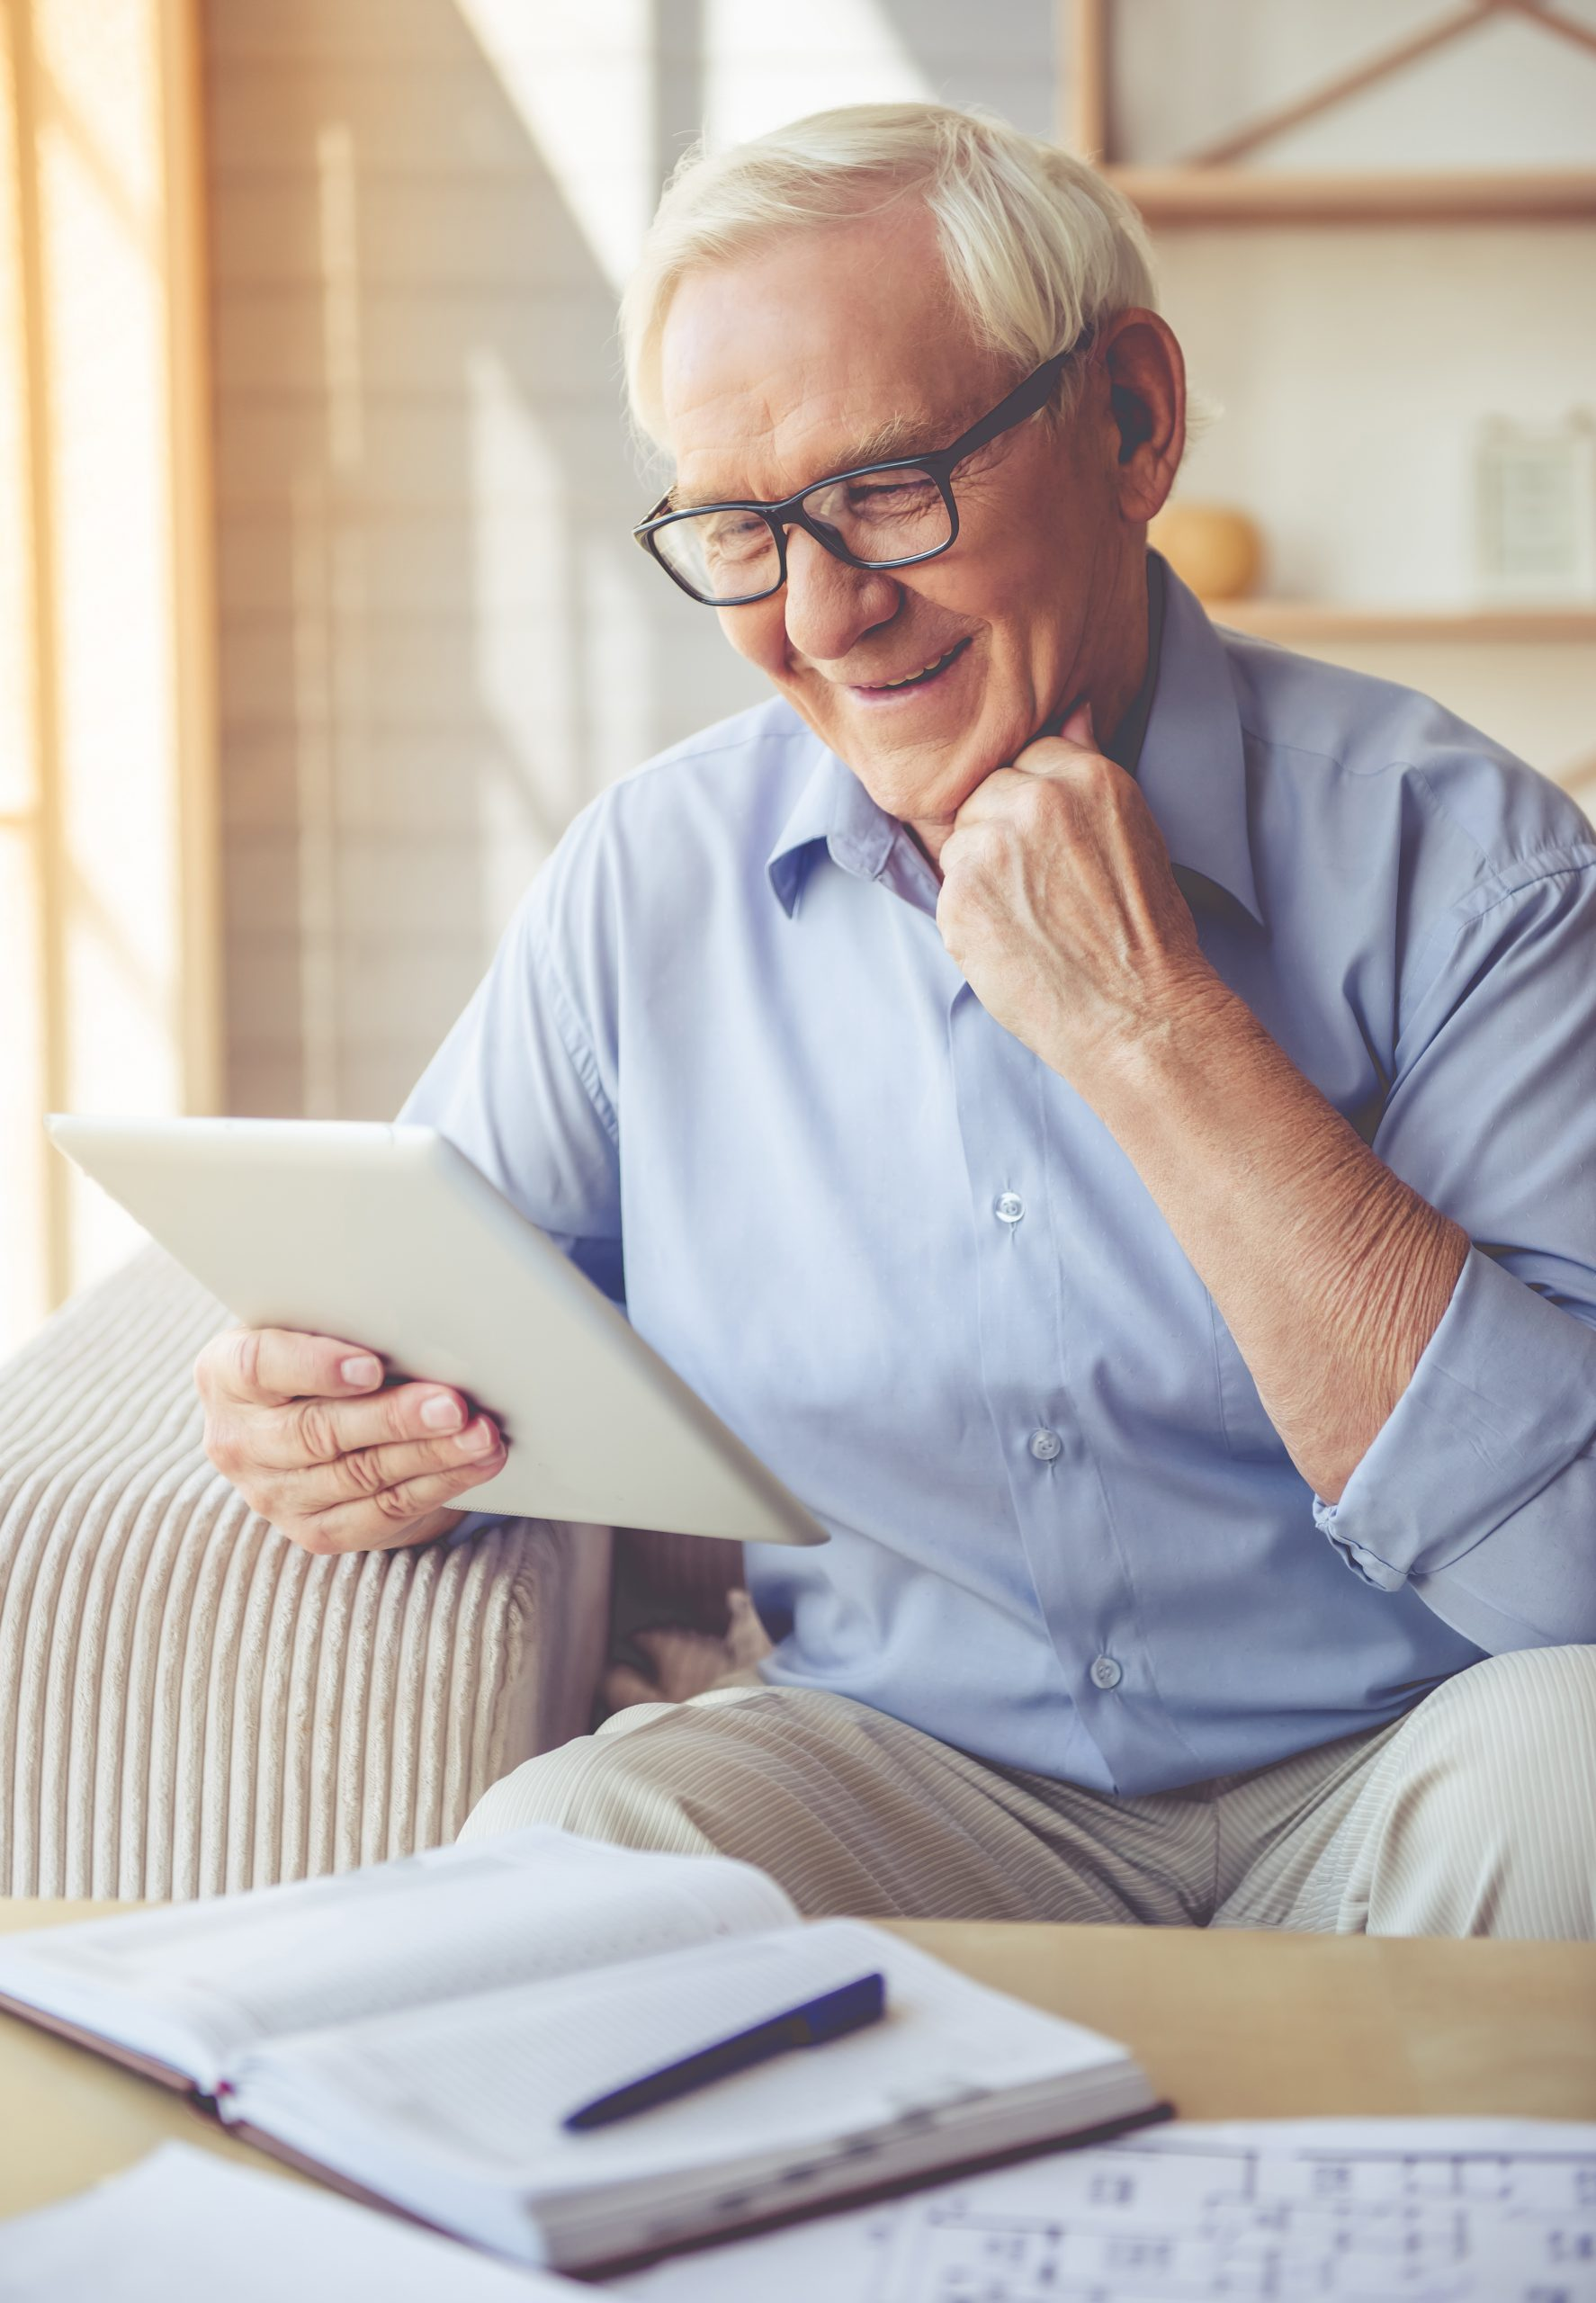 Handsome old man in eyeglasses is using a digital tablet and smiling while sitting on couch at home